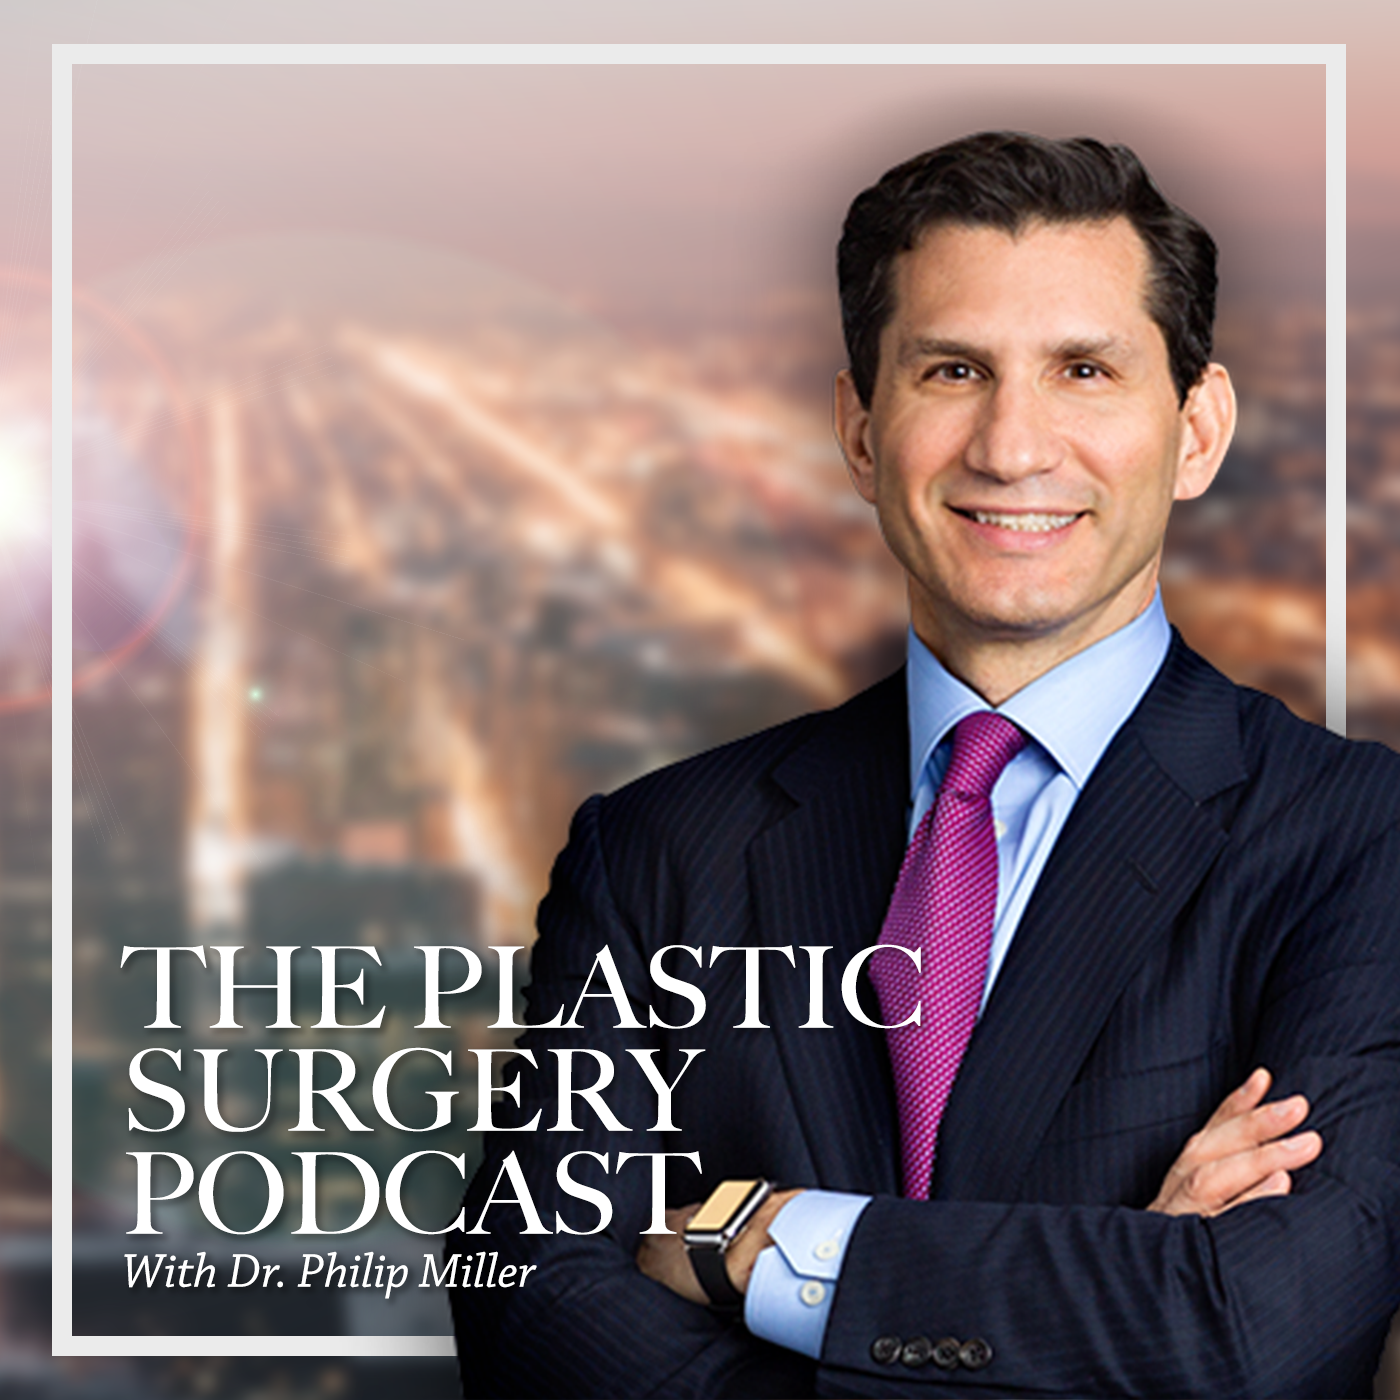 The Plastic Surgery Podcast with Dr. Philip Miller show art